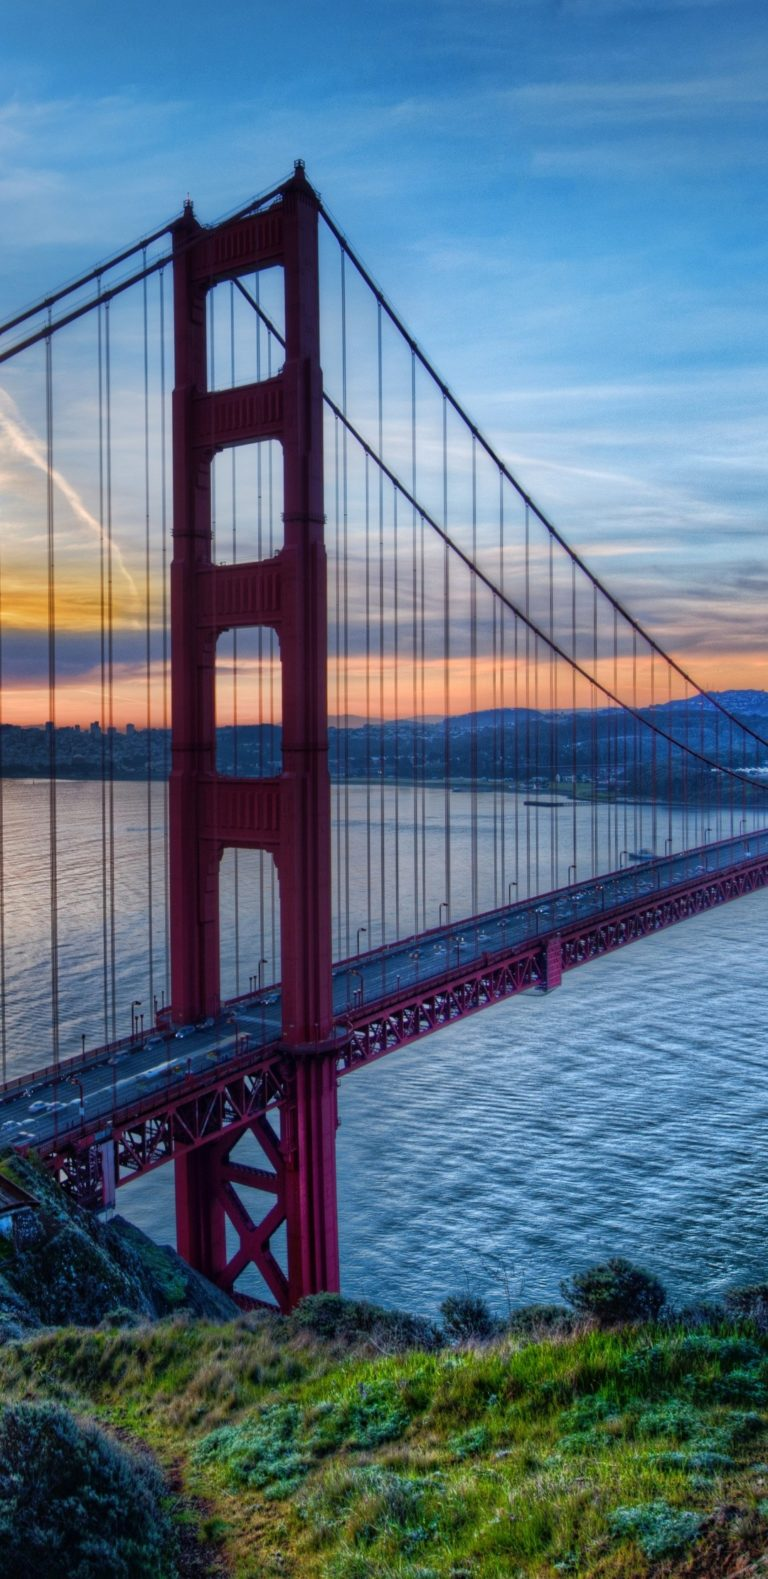 Bridge Golden Gate 1080x2220 768x1579